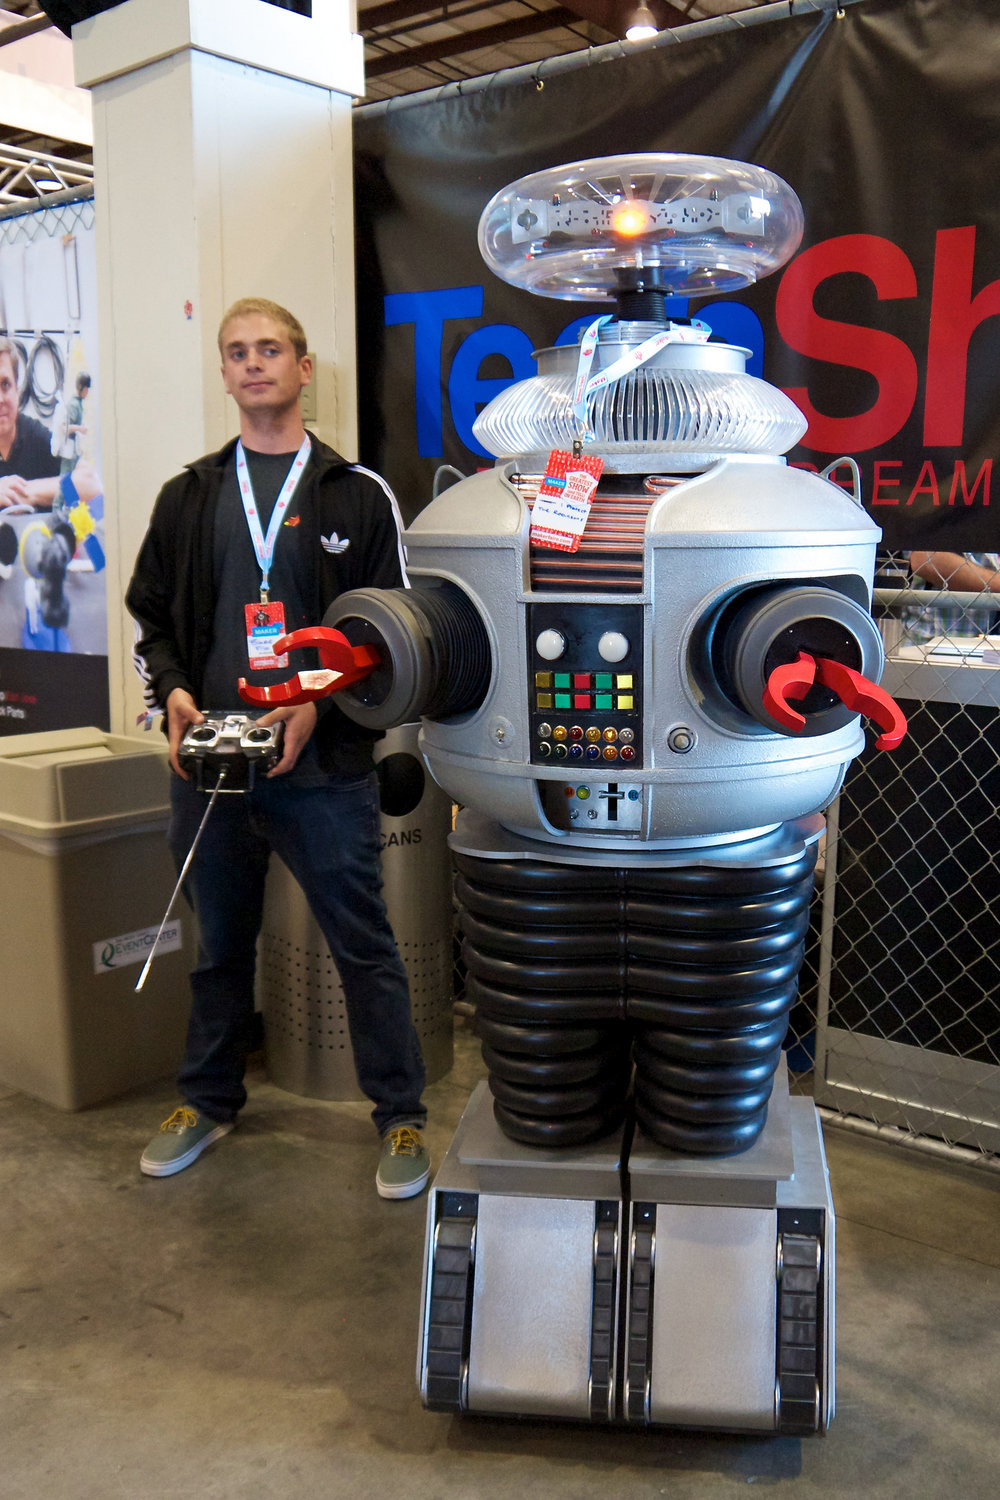 Danger Will Robinson, Danger!  (Lost in Space Robot at Maker Faire by Don DeBold)